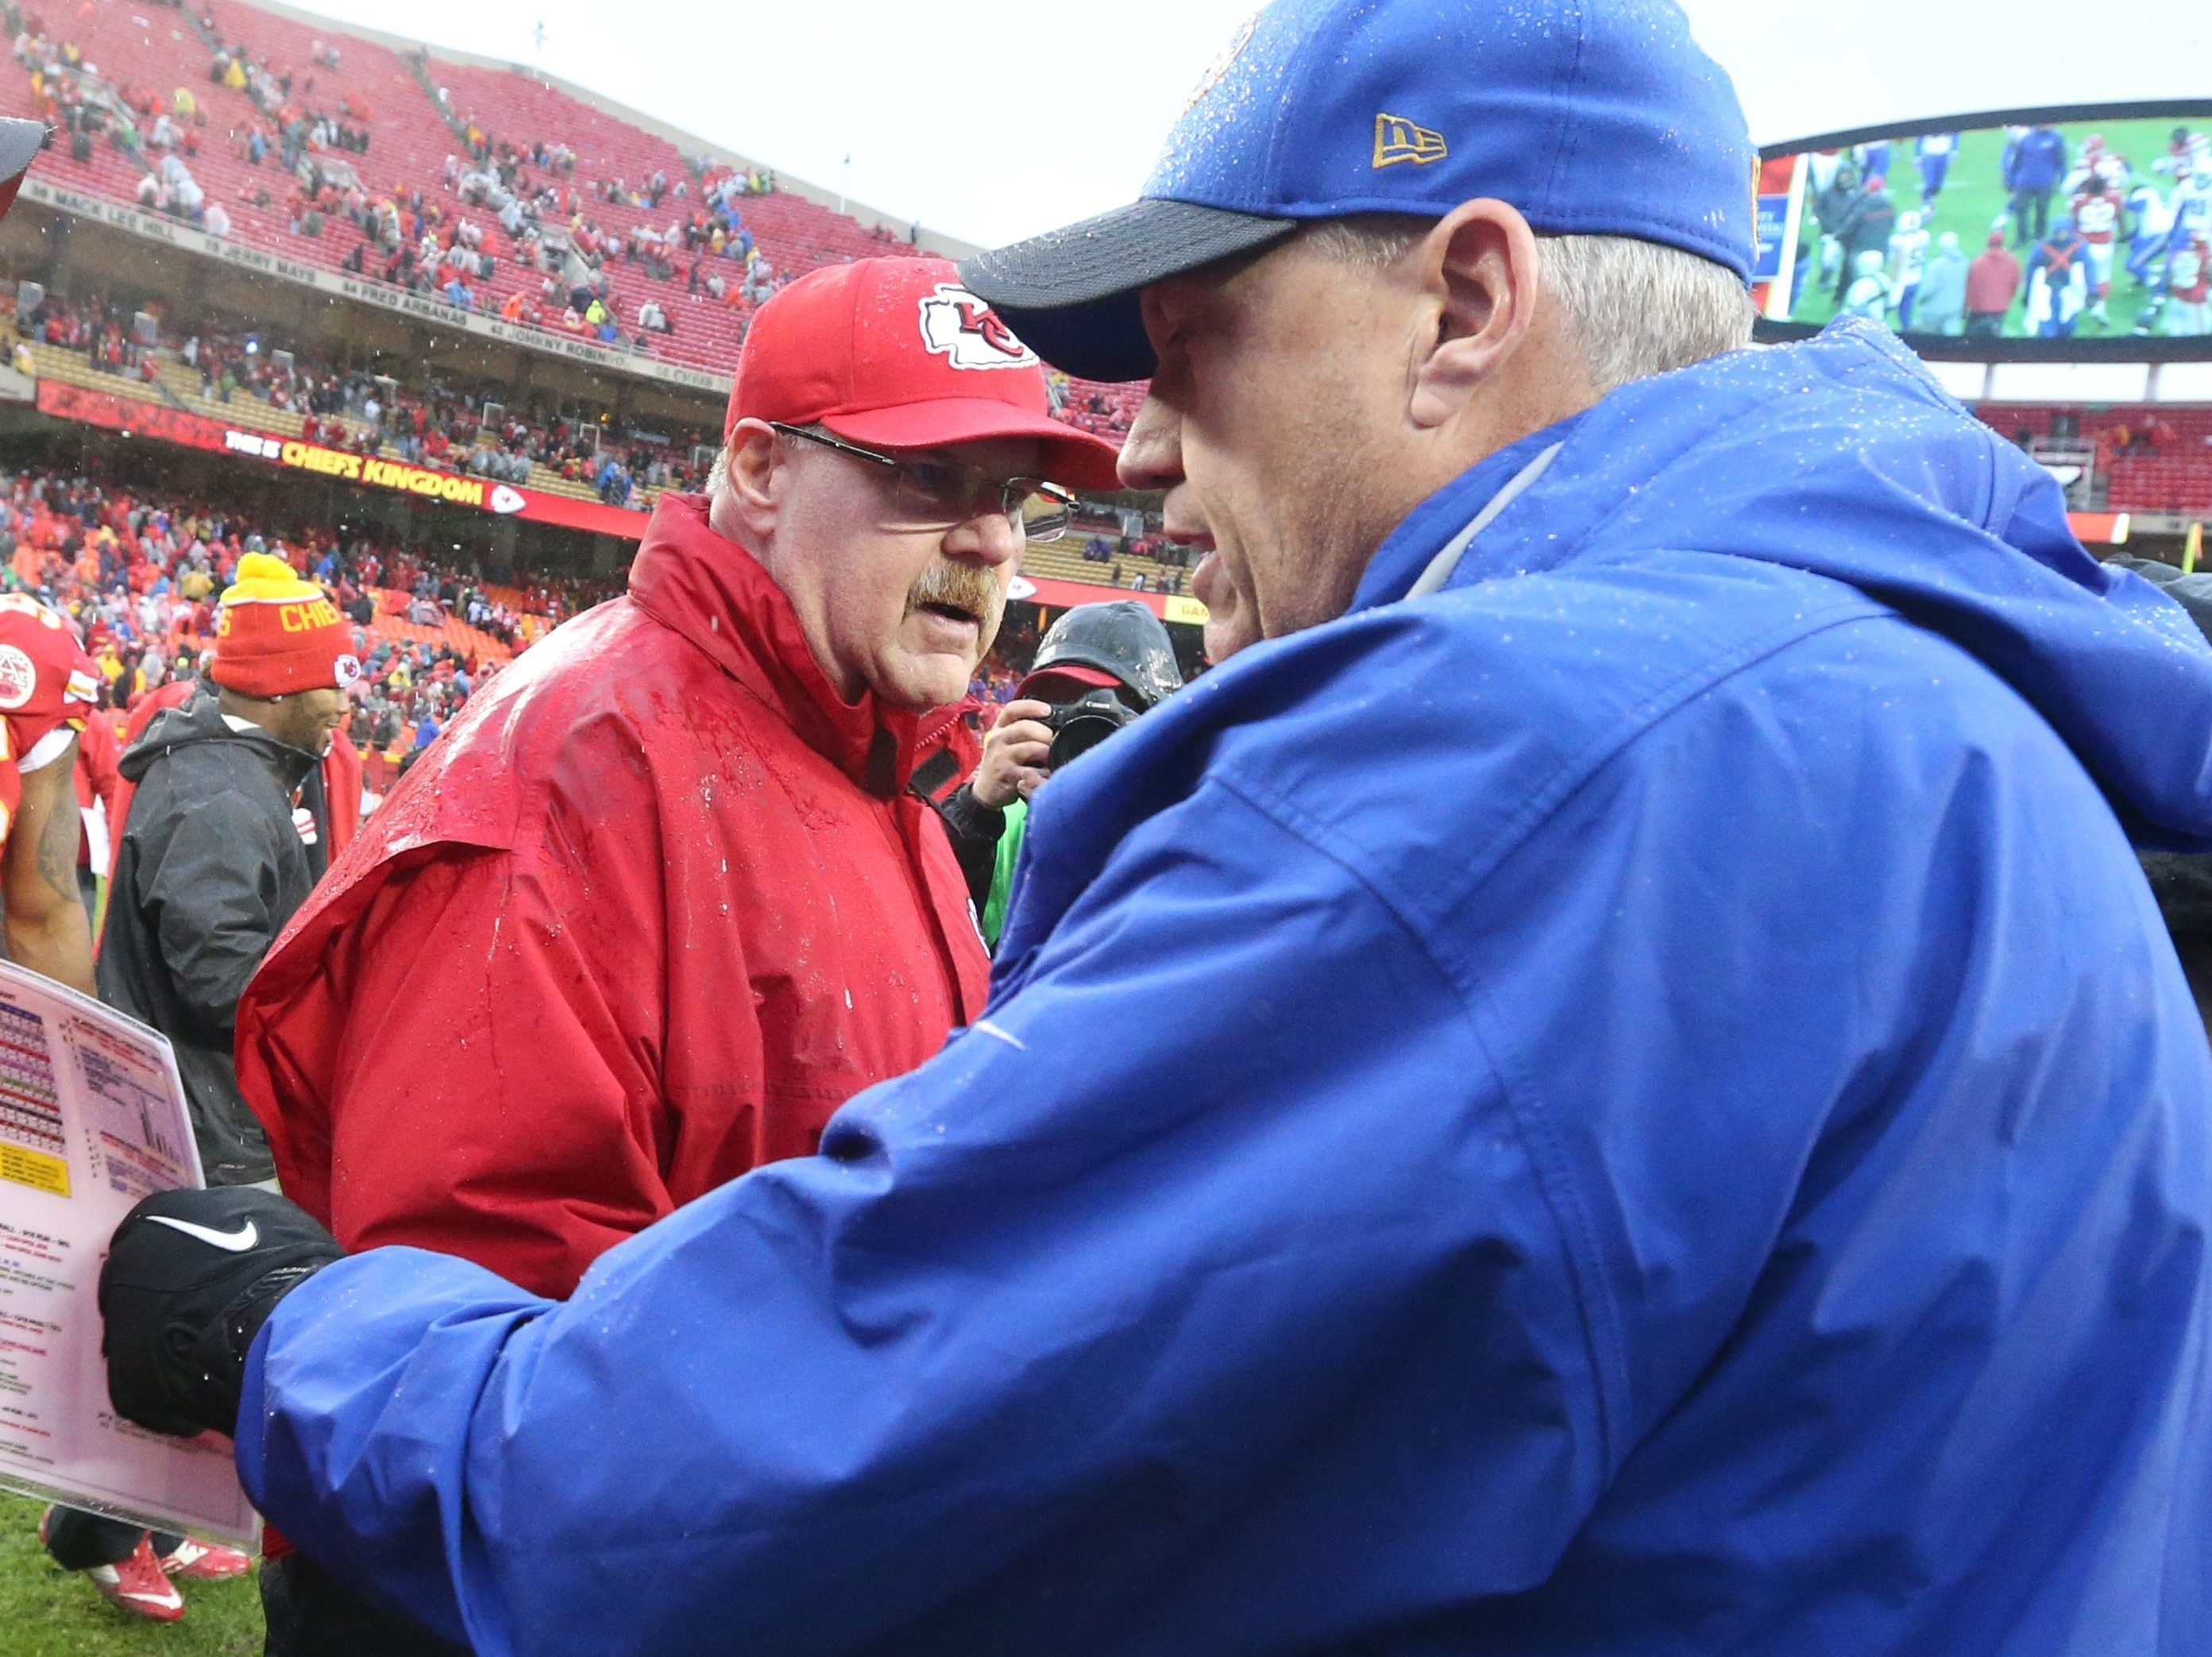 Buffalo Bills head coach Rex Ryan and Kansas City Chiefs head coach Andy Reid shake hands after the game at Arrowhead Stadium in Kansas City, Mo. on Sunday, Nov. 29, 2015.  (James P. McCoy/ Buffalo News)